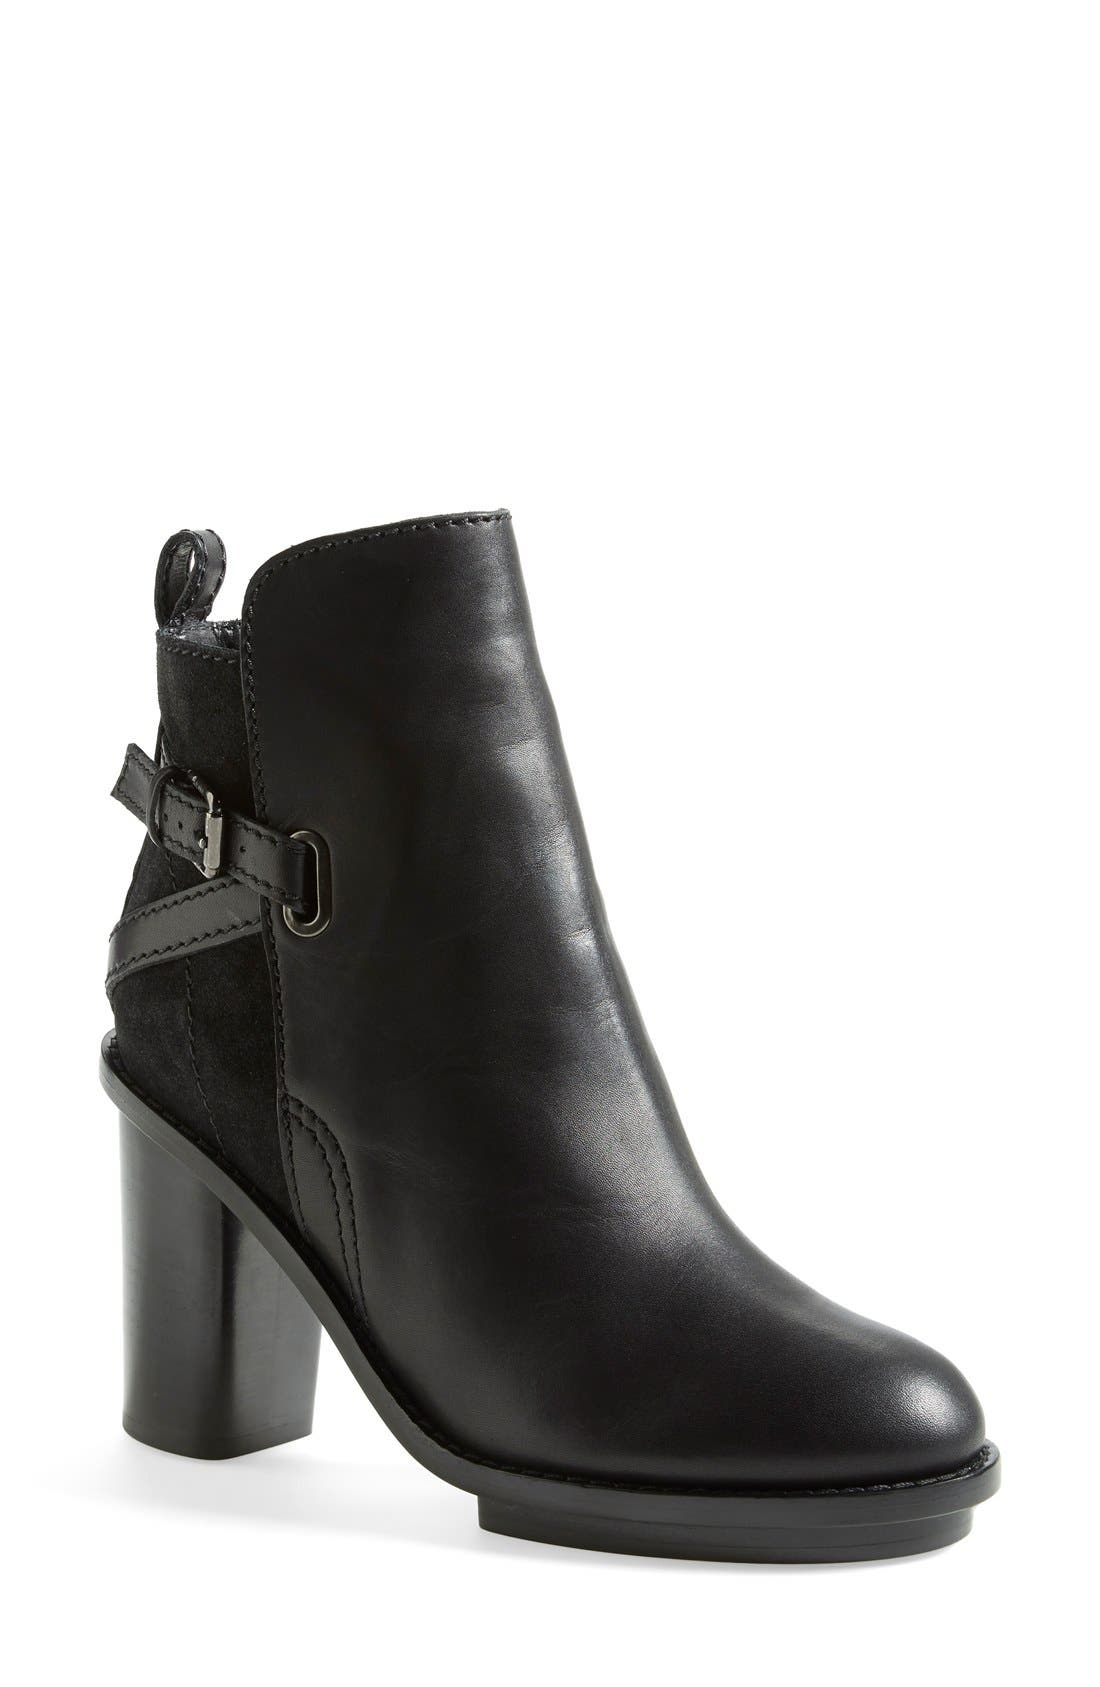 Alternate Image 1 Selected - Acne Studios 'Cypress' Leather & Suede Bootie (Women)